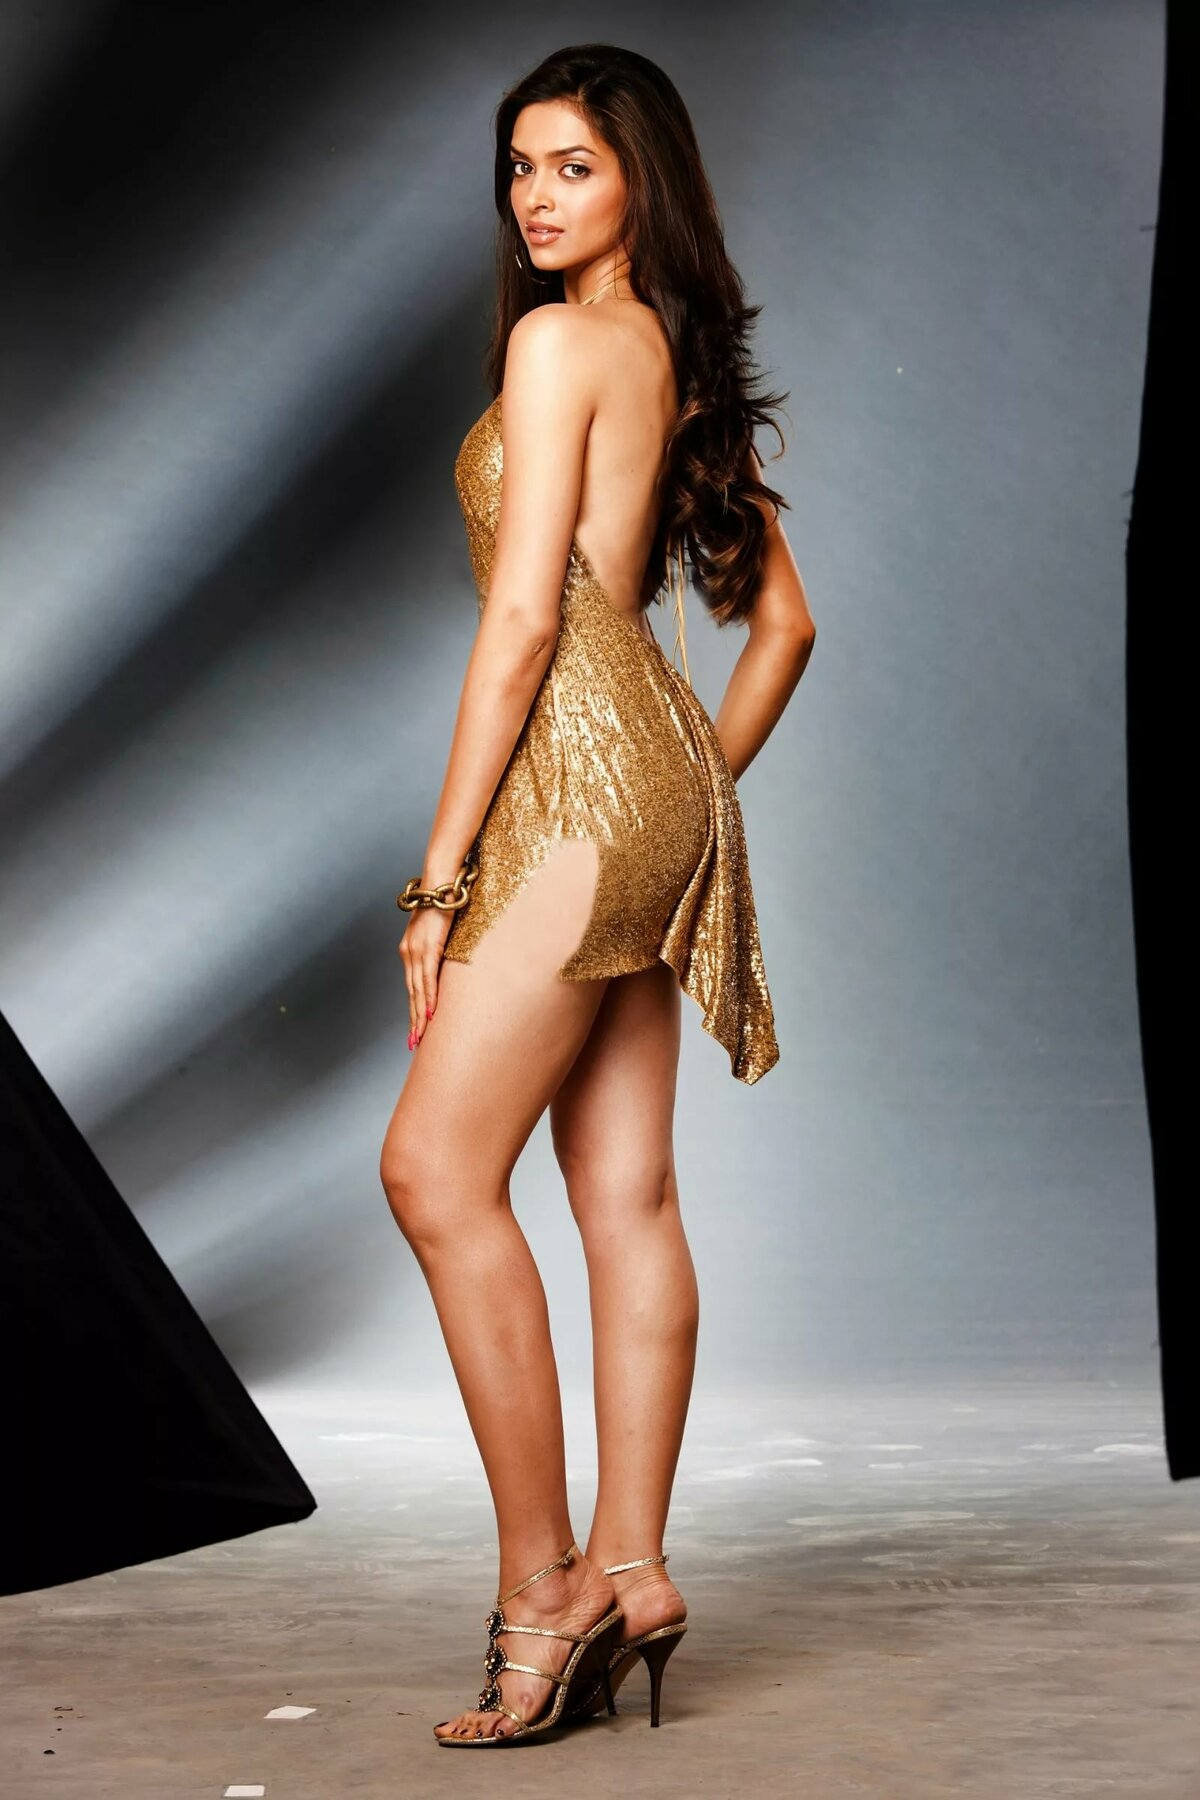 Hot actresses of bollywood